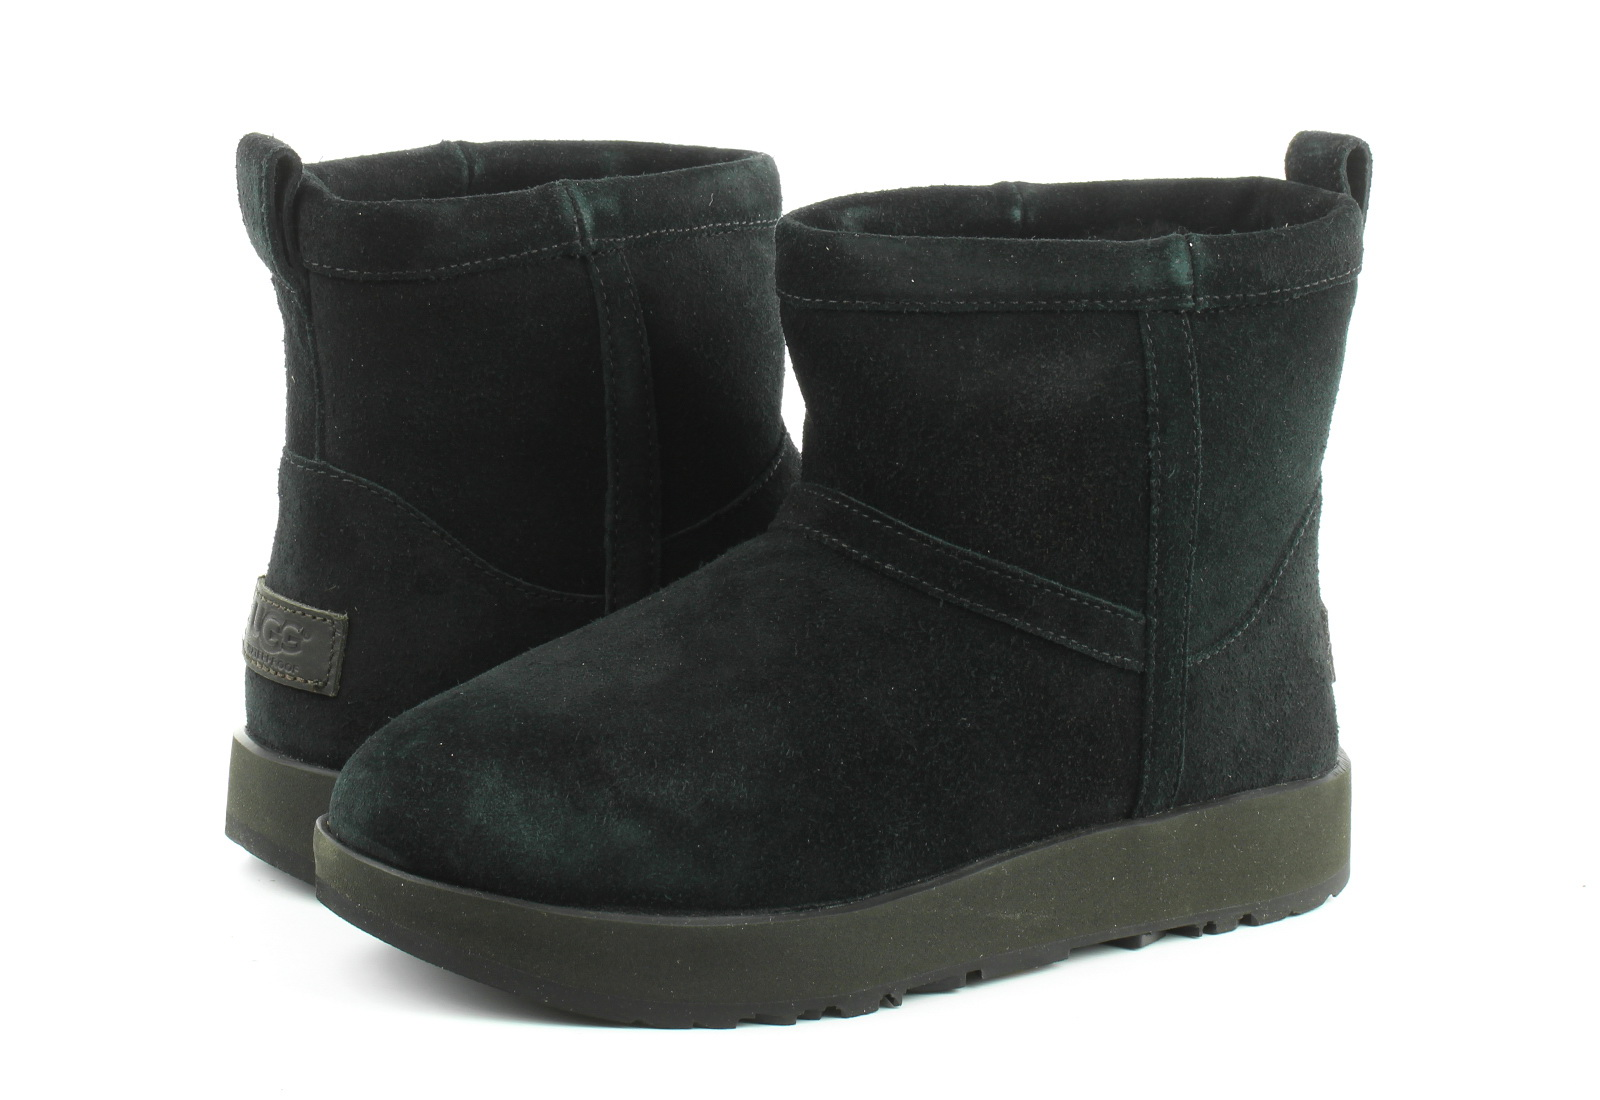 Ugg Cizme W Classic Mini Waterproof